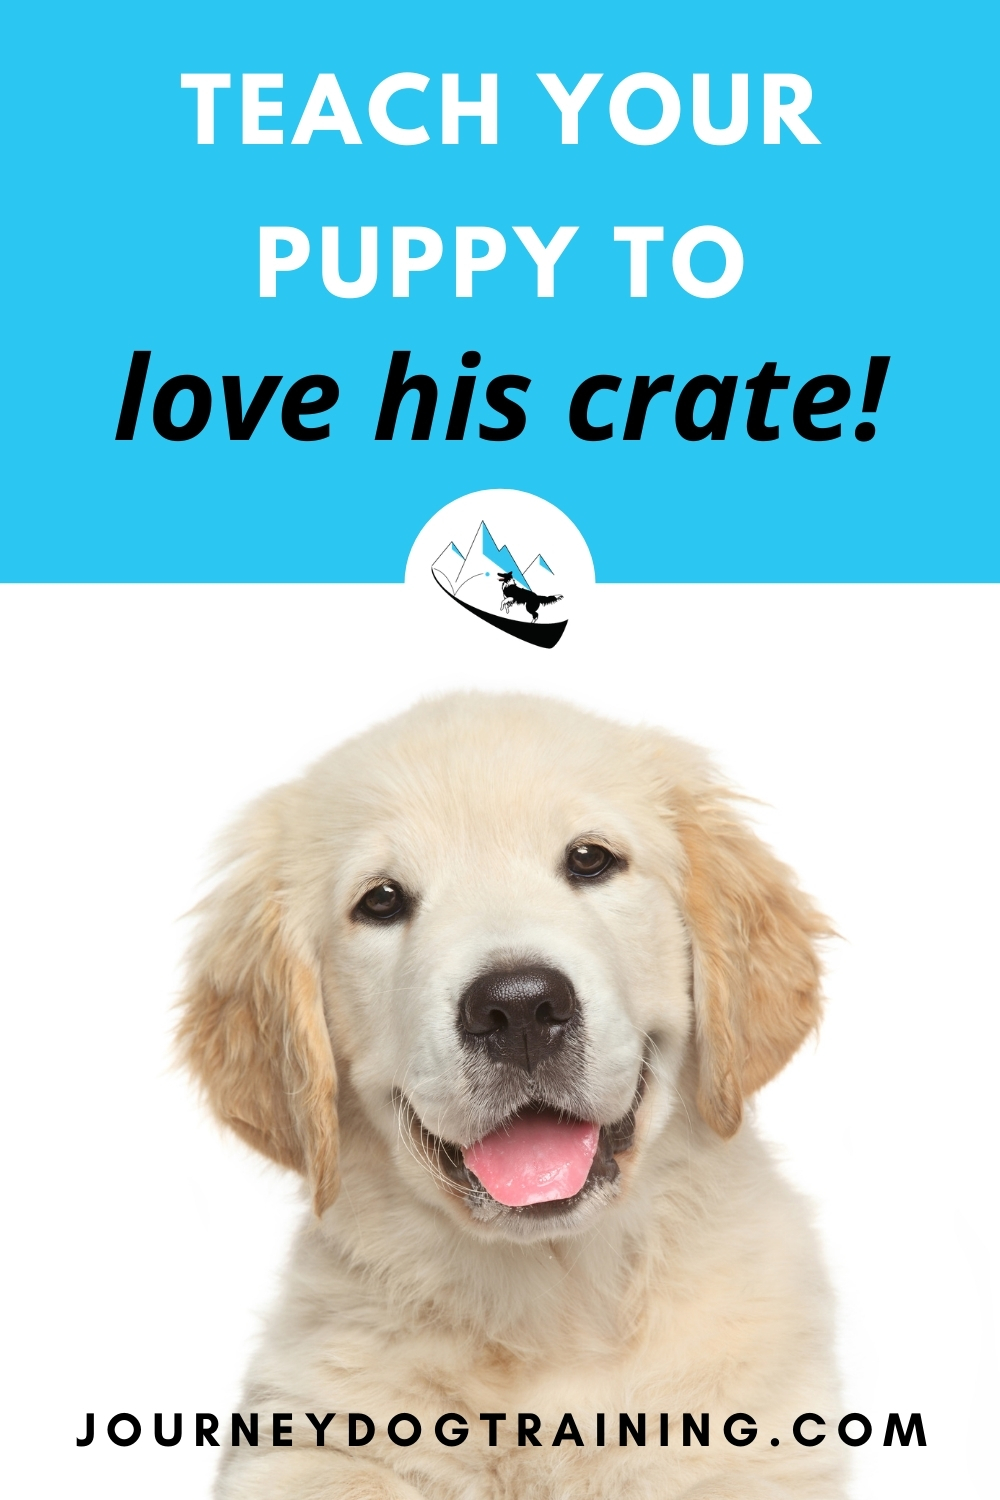 Teach your puppy to love his crate | journeydogtraining.com